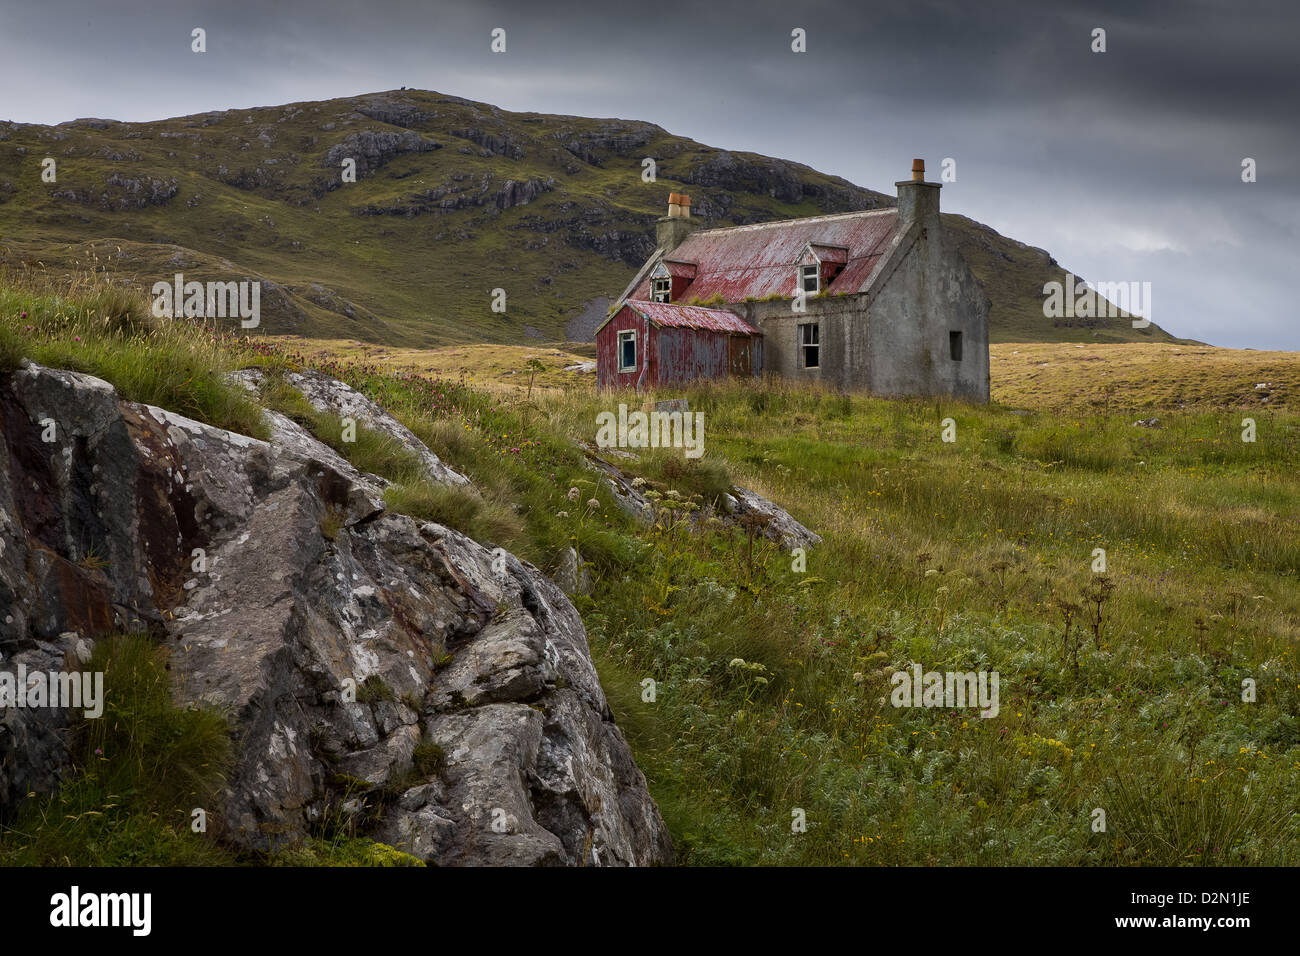 An Old Abandoned cottage on a hillside in Eriskay in the Outer Hebrides - Stock Image